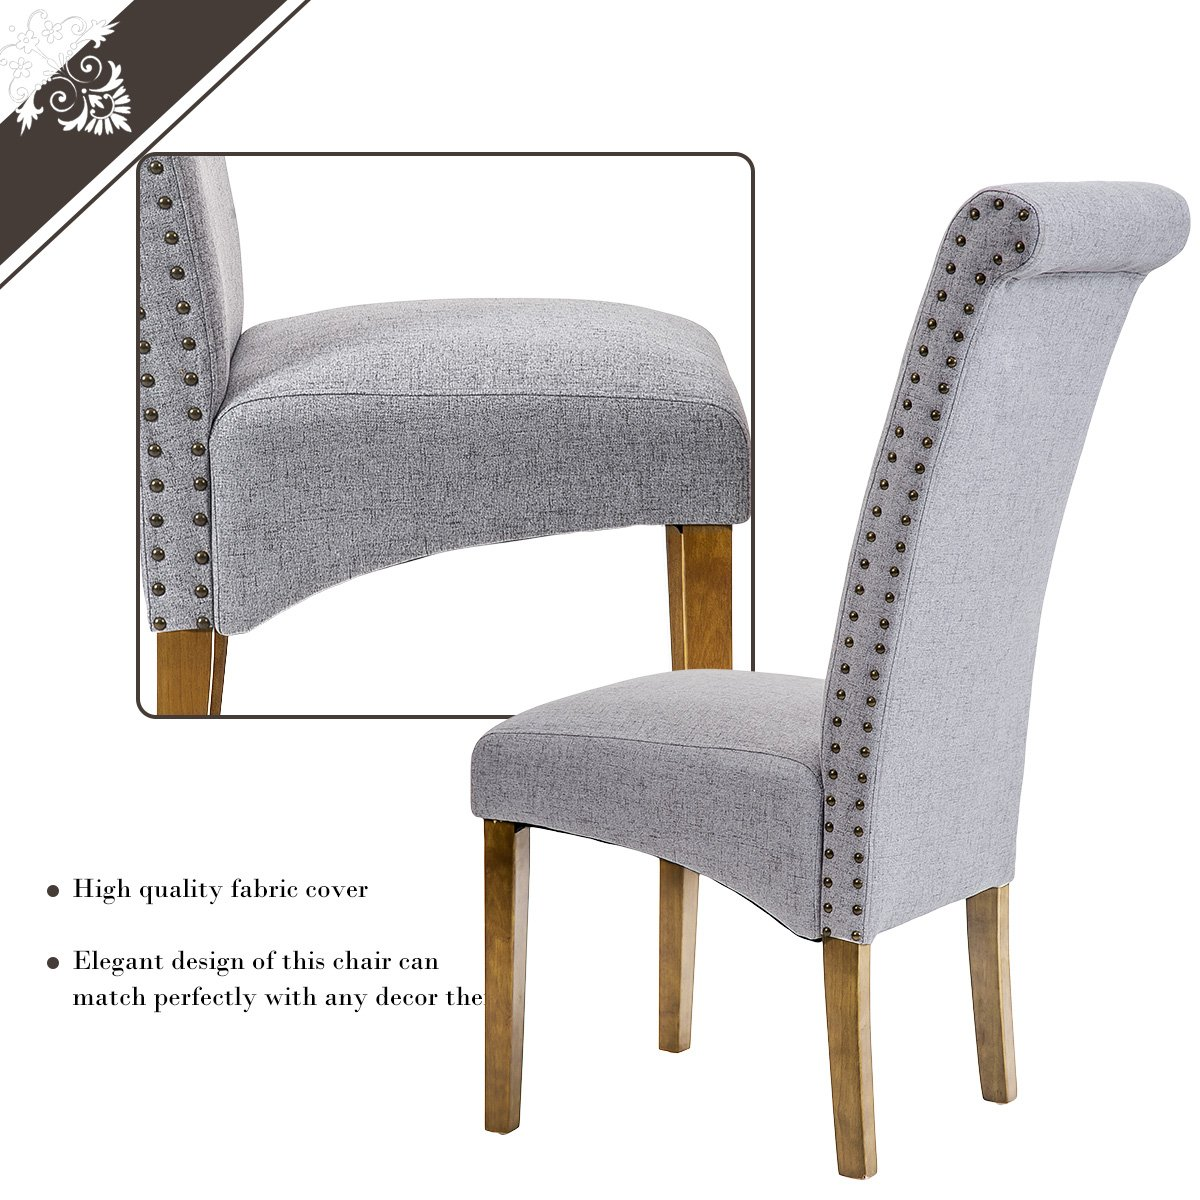 Merax Dining Chairs Set of 2 Fabric Padded Side Chair with Solid Wood Legs, Nailed Trim(Grey) by Merax (Image #4)